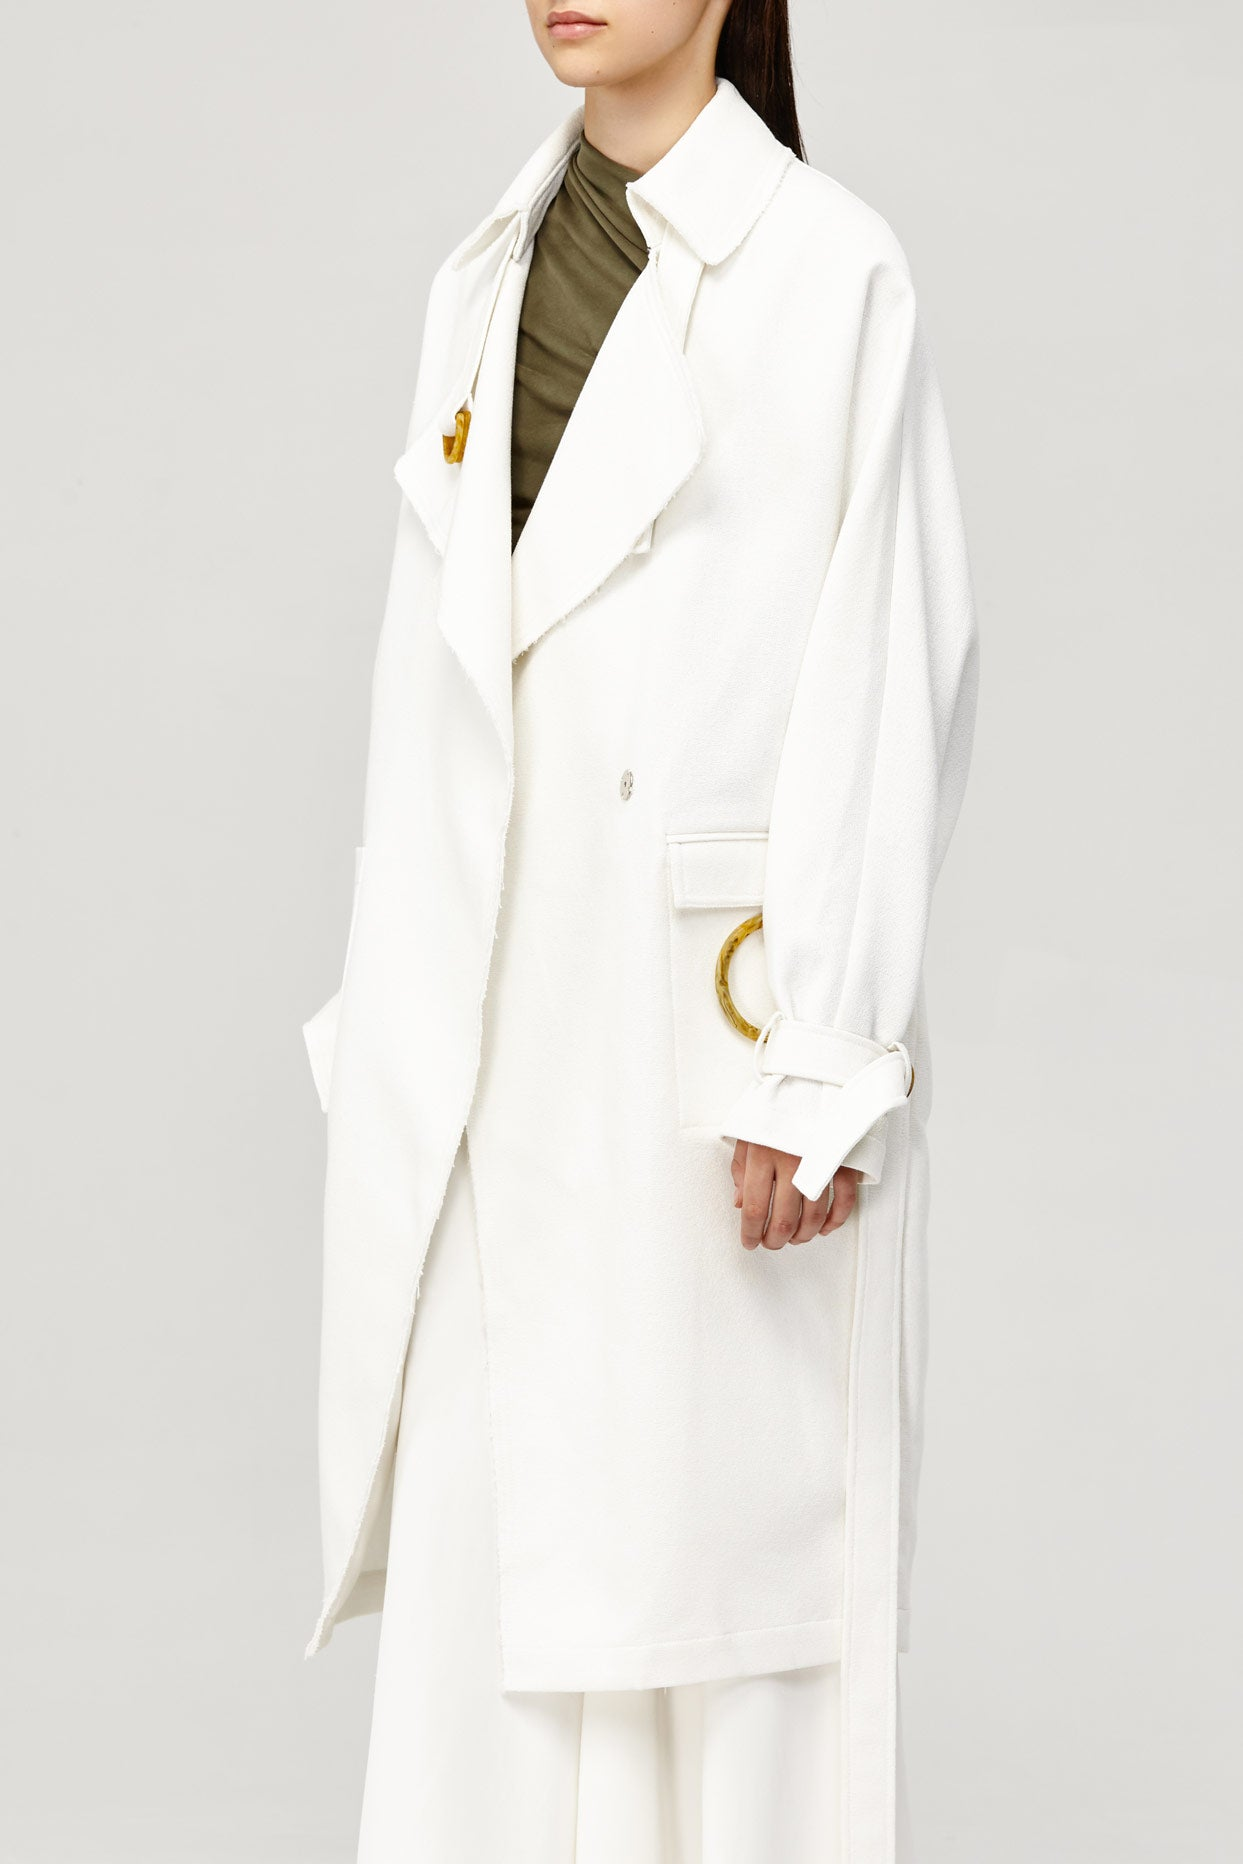 Acler Ladies Cream Collared Arbour Trench Coat